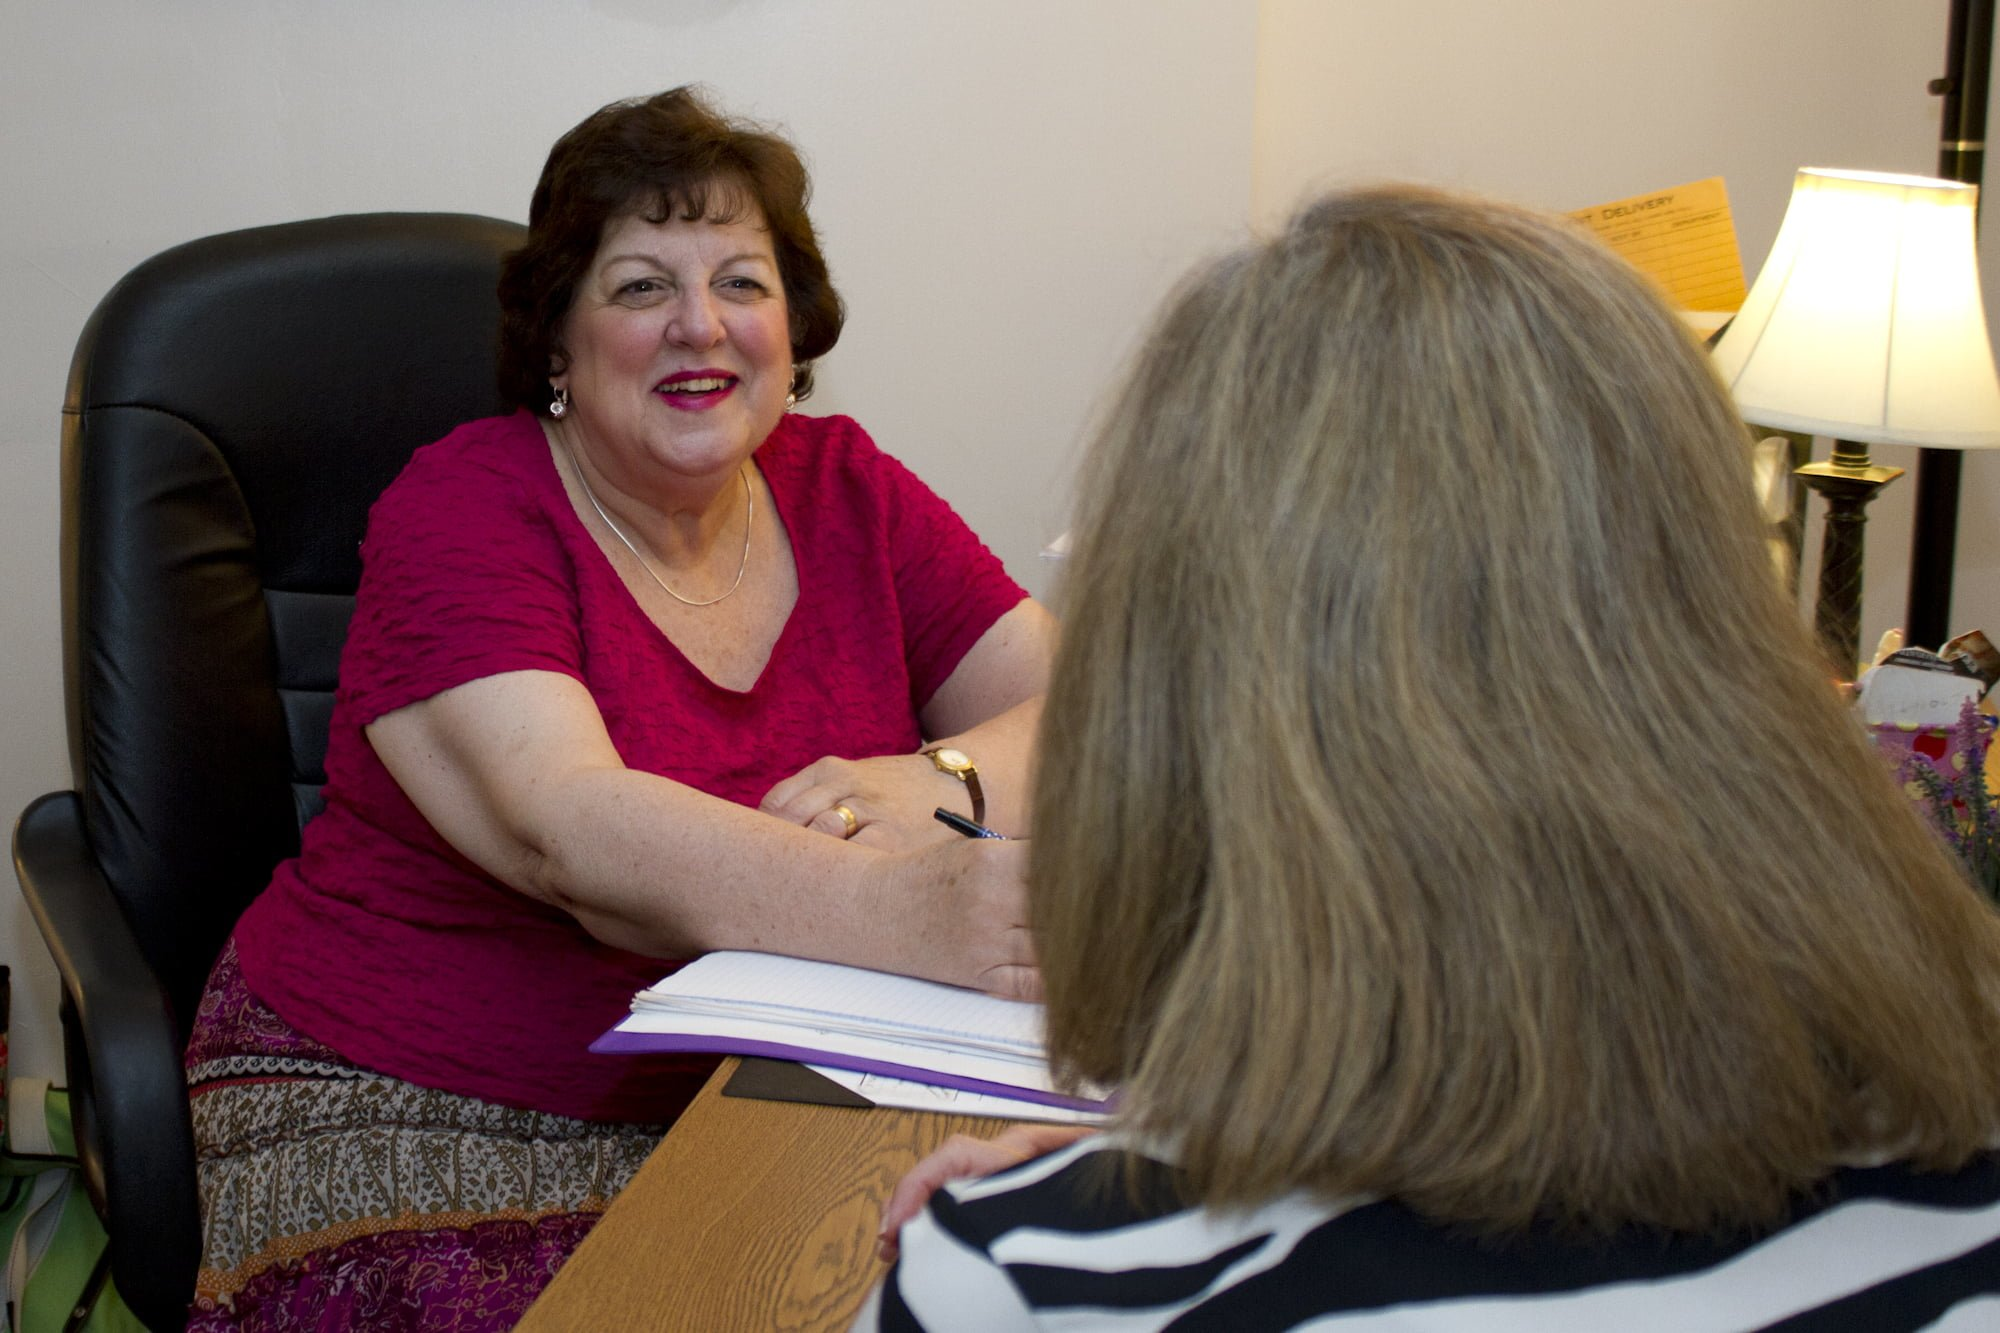 New Directions Counseling Center - Interfaith Social Services